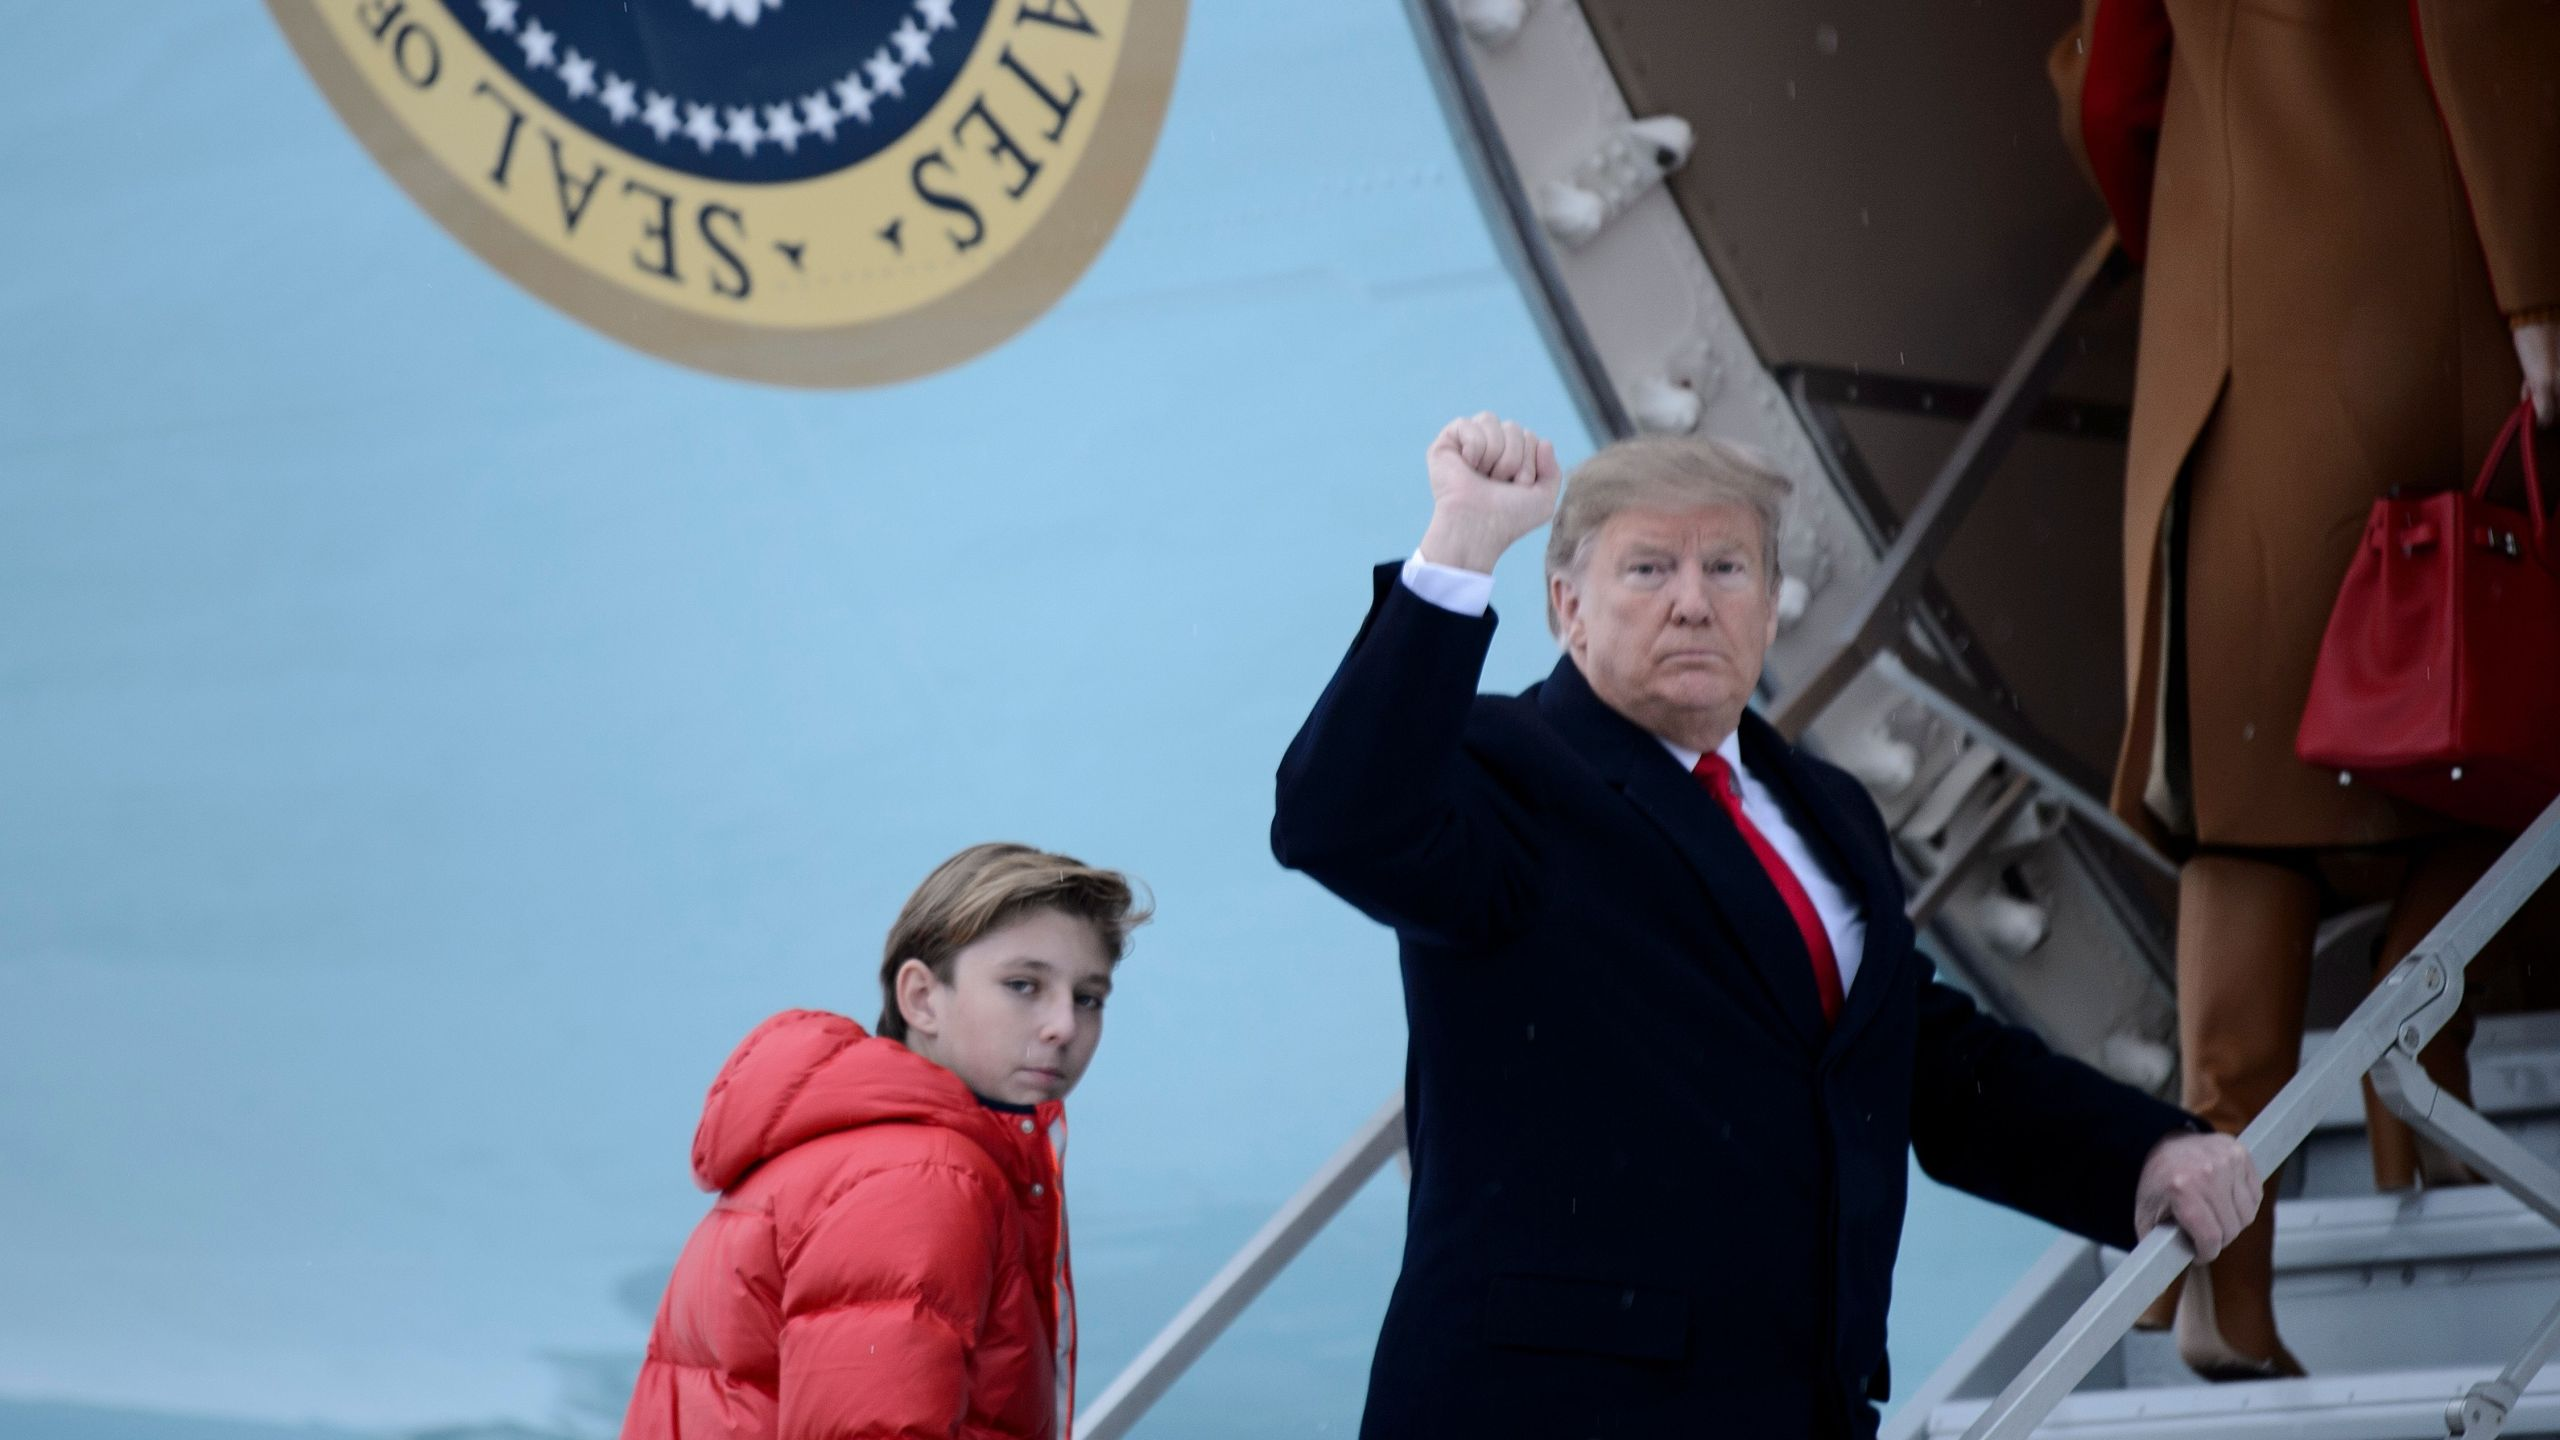 US President Donald Trump and son Barron Trump board Air Force One at Andrews Air Force Base on Feb. 1, 2019, in Maryland, en route to Palm Beach, Fla. (Credit: Brendan Smialowski/AFP/Getty Images)